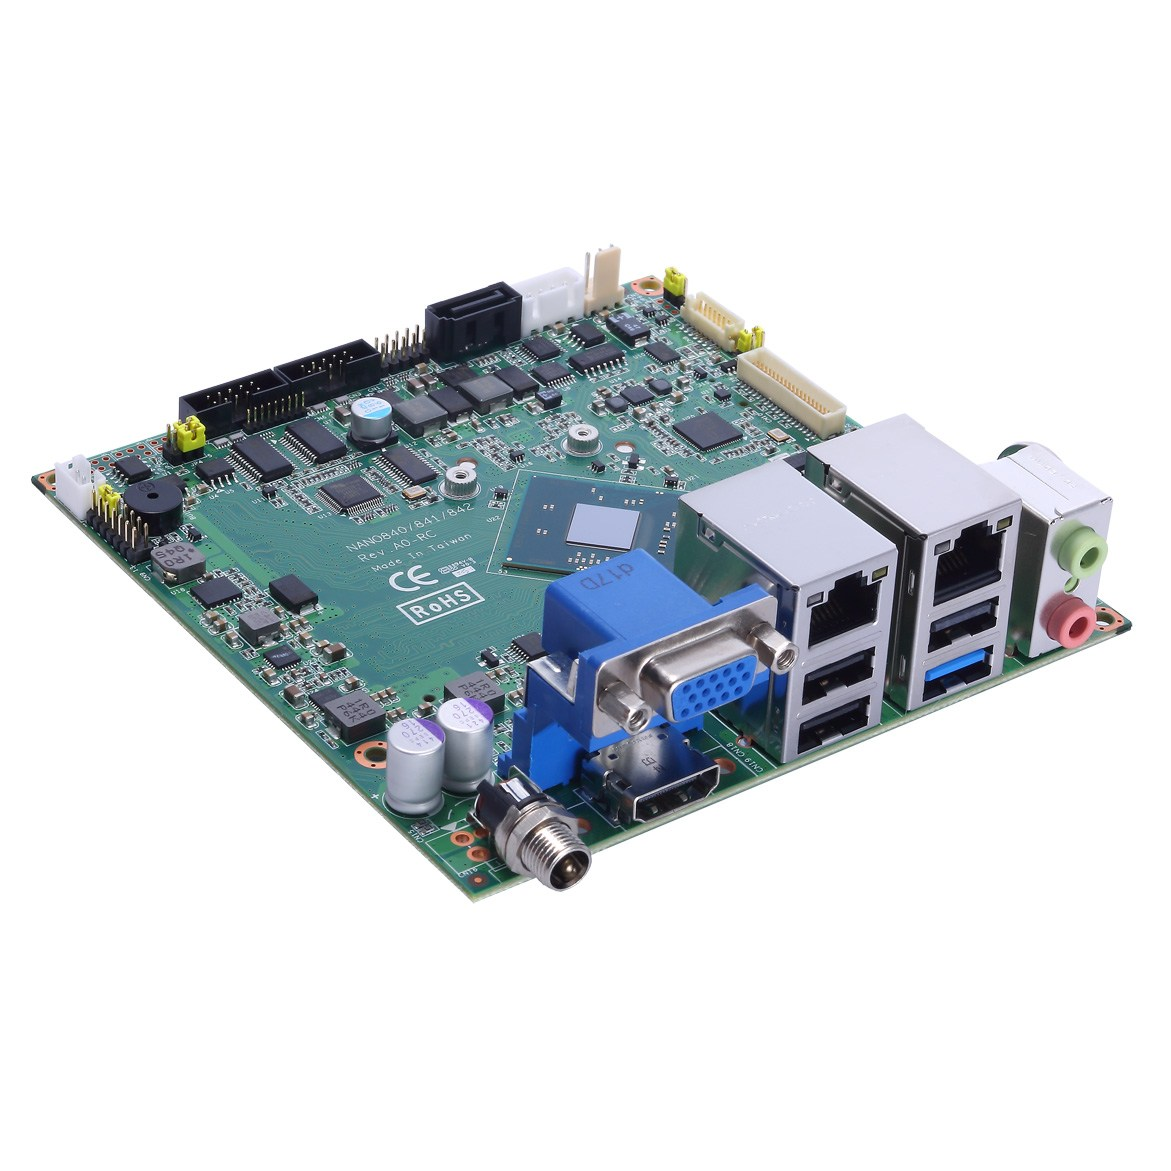 Metal USB Hub USBG 16U1 likewise  additionally Asus Z97 Sabertooth Mark S Motherboard Review 4 together with HD PCIe Capture Card HDMI VGA DVI CPNT 1080p 60FPS PEXHDCAP60L likewise Day Cap Riser Pci E 16x Noi Dai Cho Card Vga. on usb to pci express card